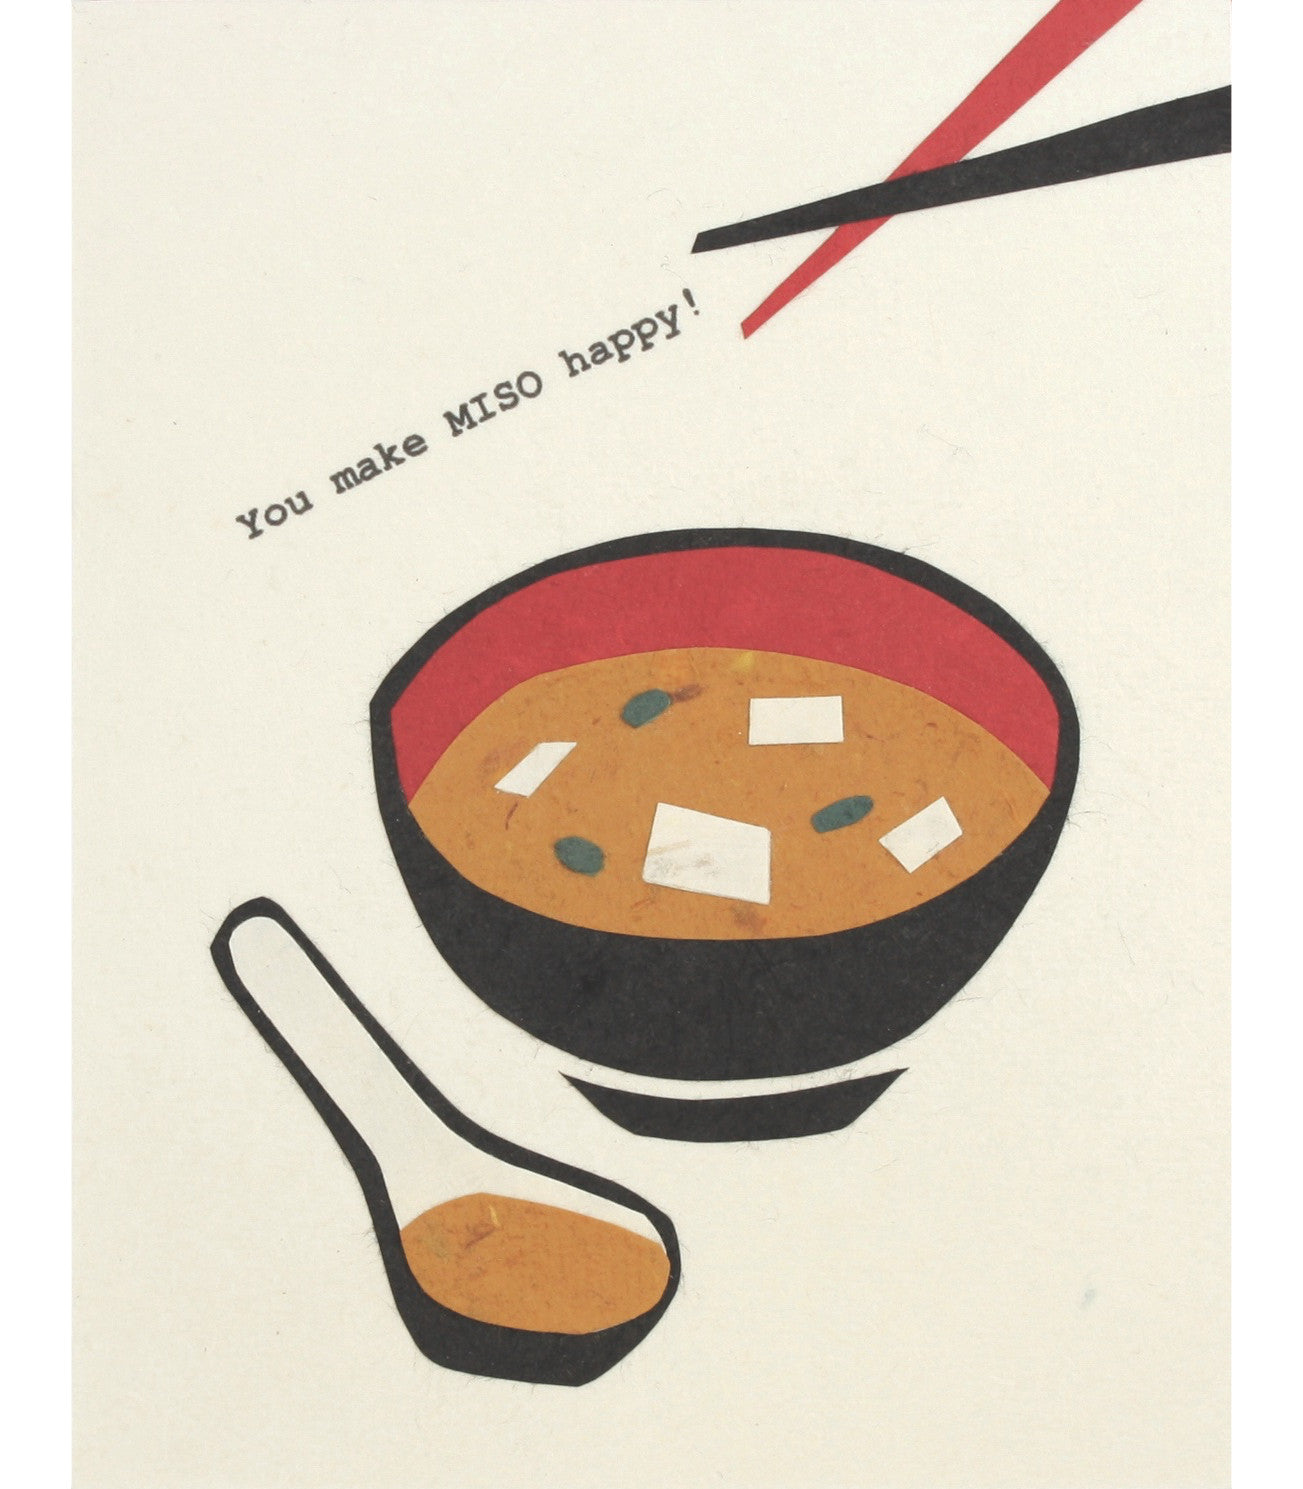 You Make Miso Happy Handcrafted Greeting Card - Good Paper